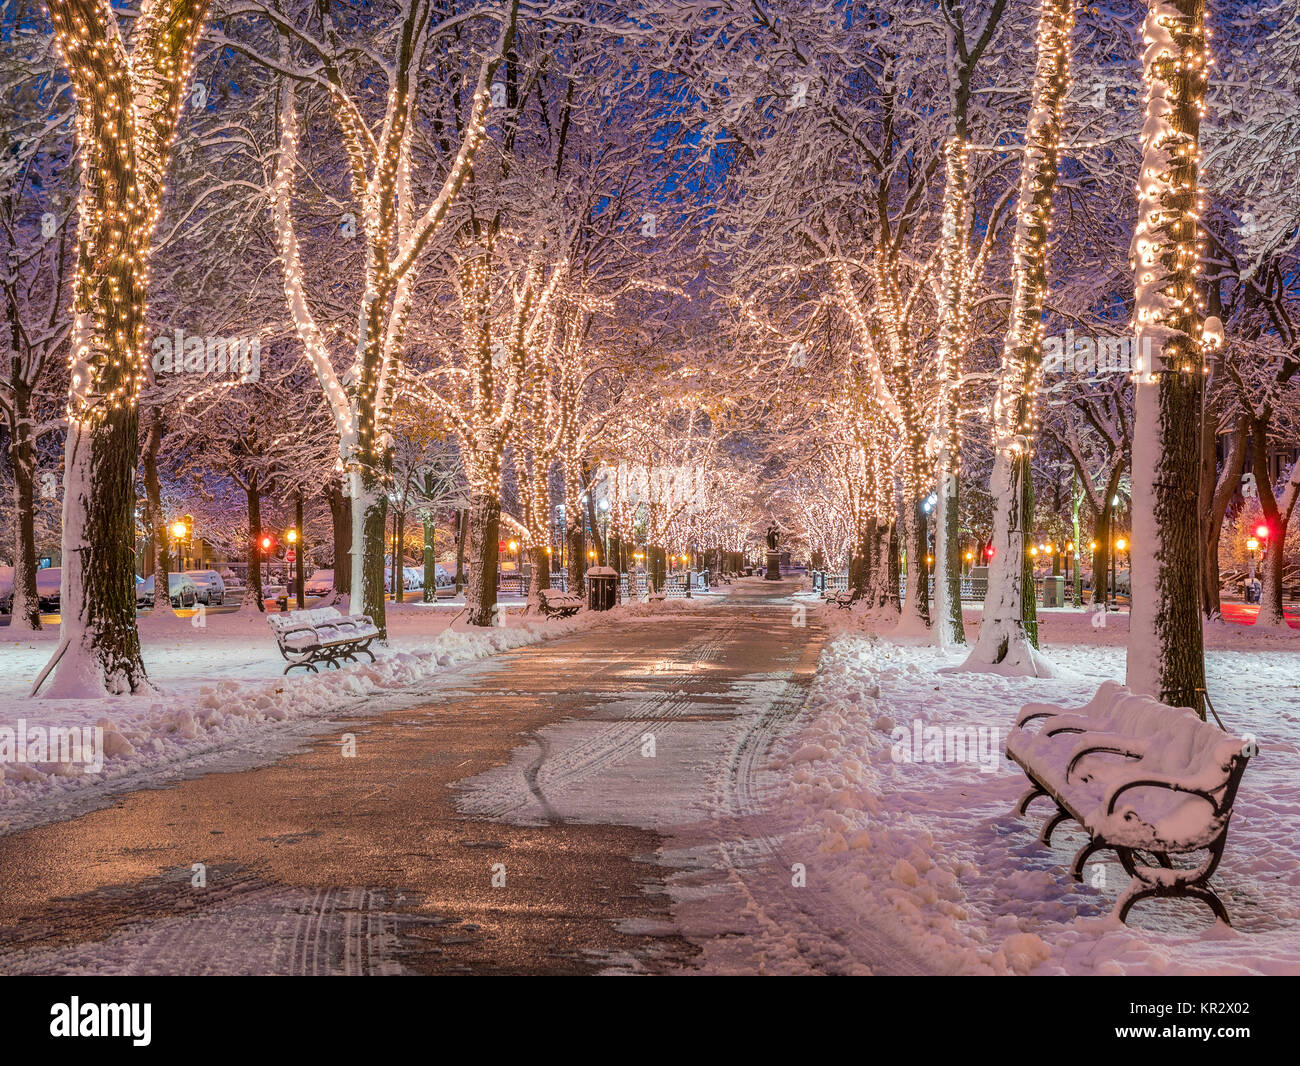 Christmas In Boston Images.Boston In Massachusetts Usa At Christmas Time Stock Photo